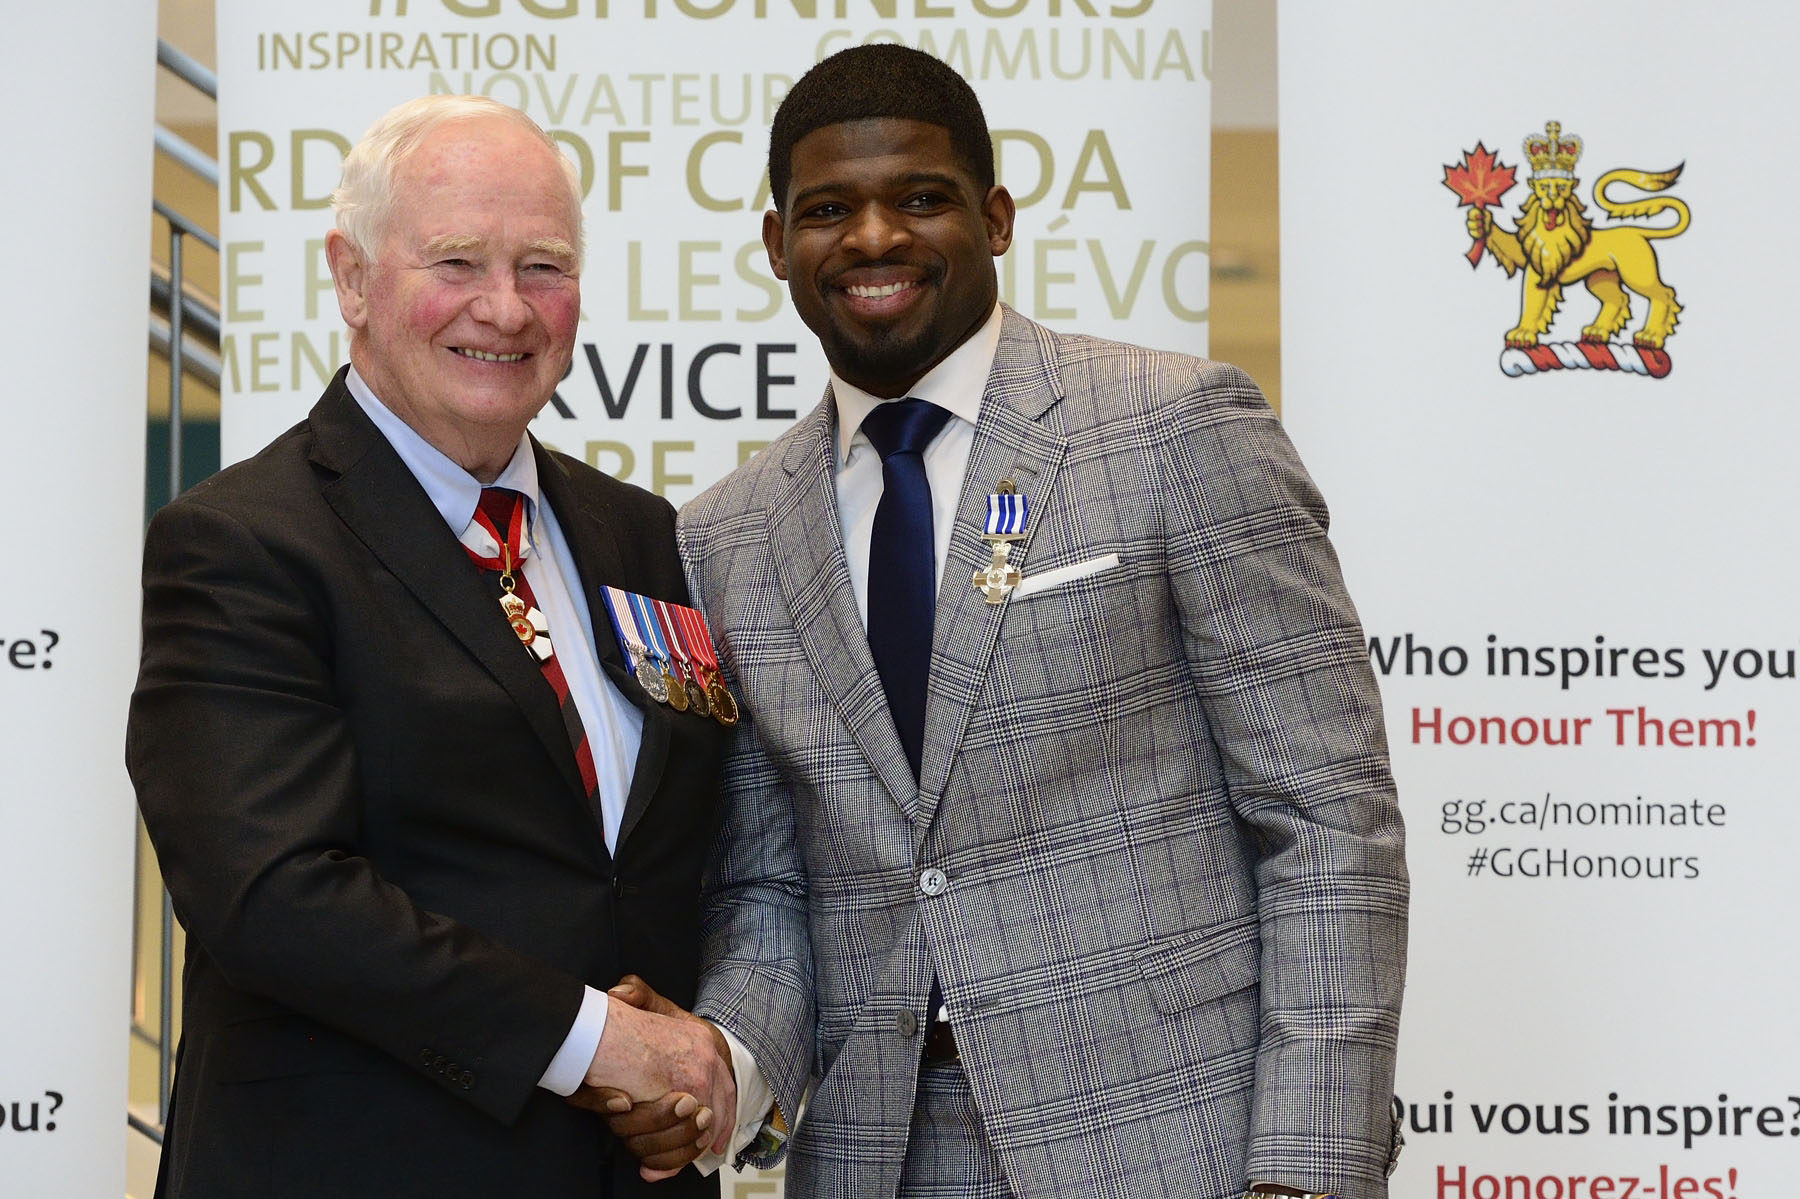 His Excellency presented a Meritorious Service Decoration (Civil Division) to Mr. Pernell-Karl (P.K.) Subban. The Meritorious Service Decorations were established to recognize the extraordinary people who make Canada proud. Their acts are often innovative, set an example or model for others to follow, or respond to a particular challenge faced by a community. Recipients inspire others through their motivation to find solutions to specific and pressing needs or provide an important service to their community or country.